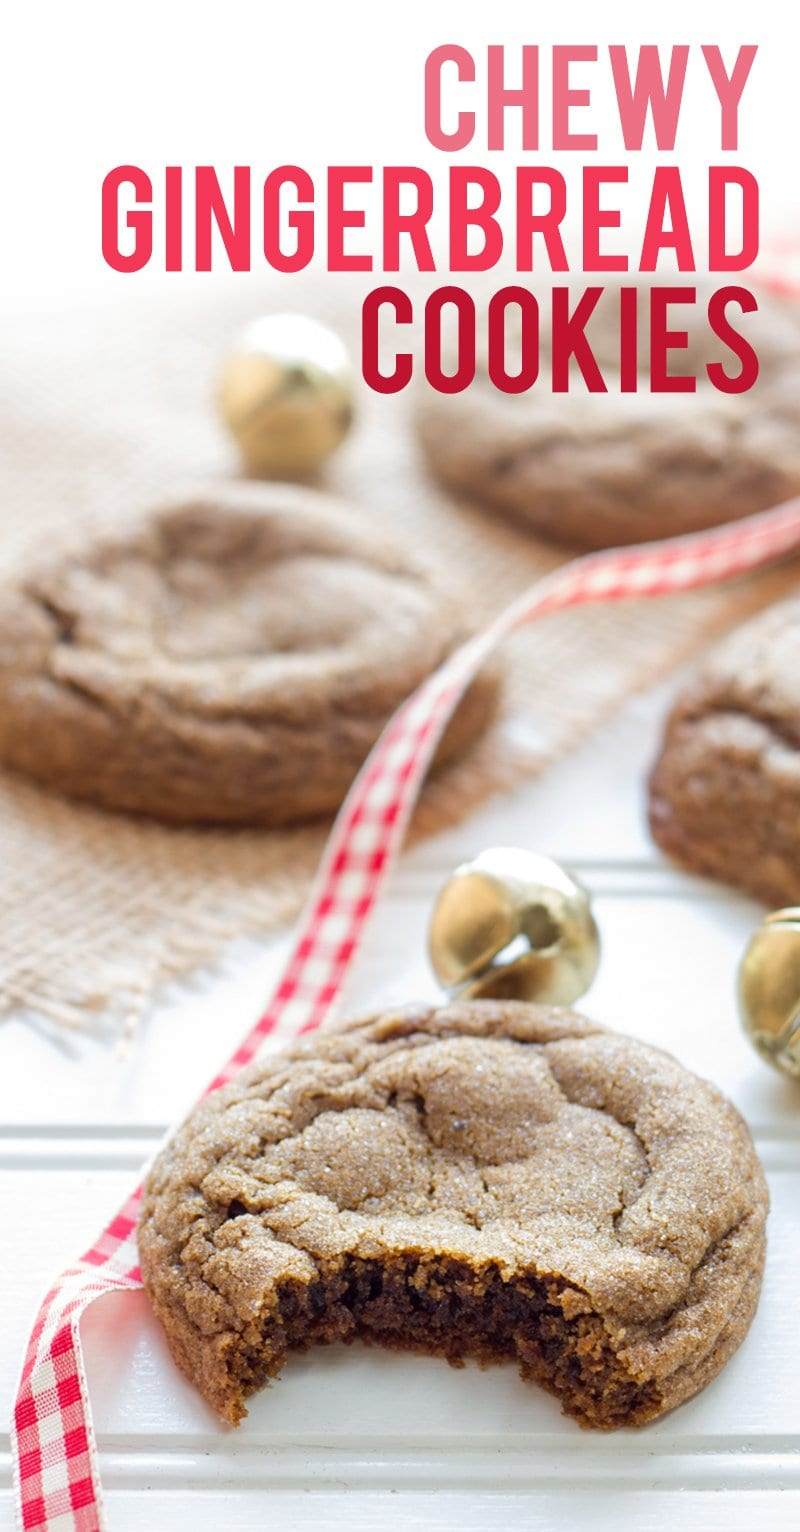 Chewy Gingerbread Cookies | Wholefully